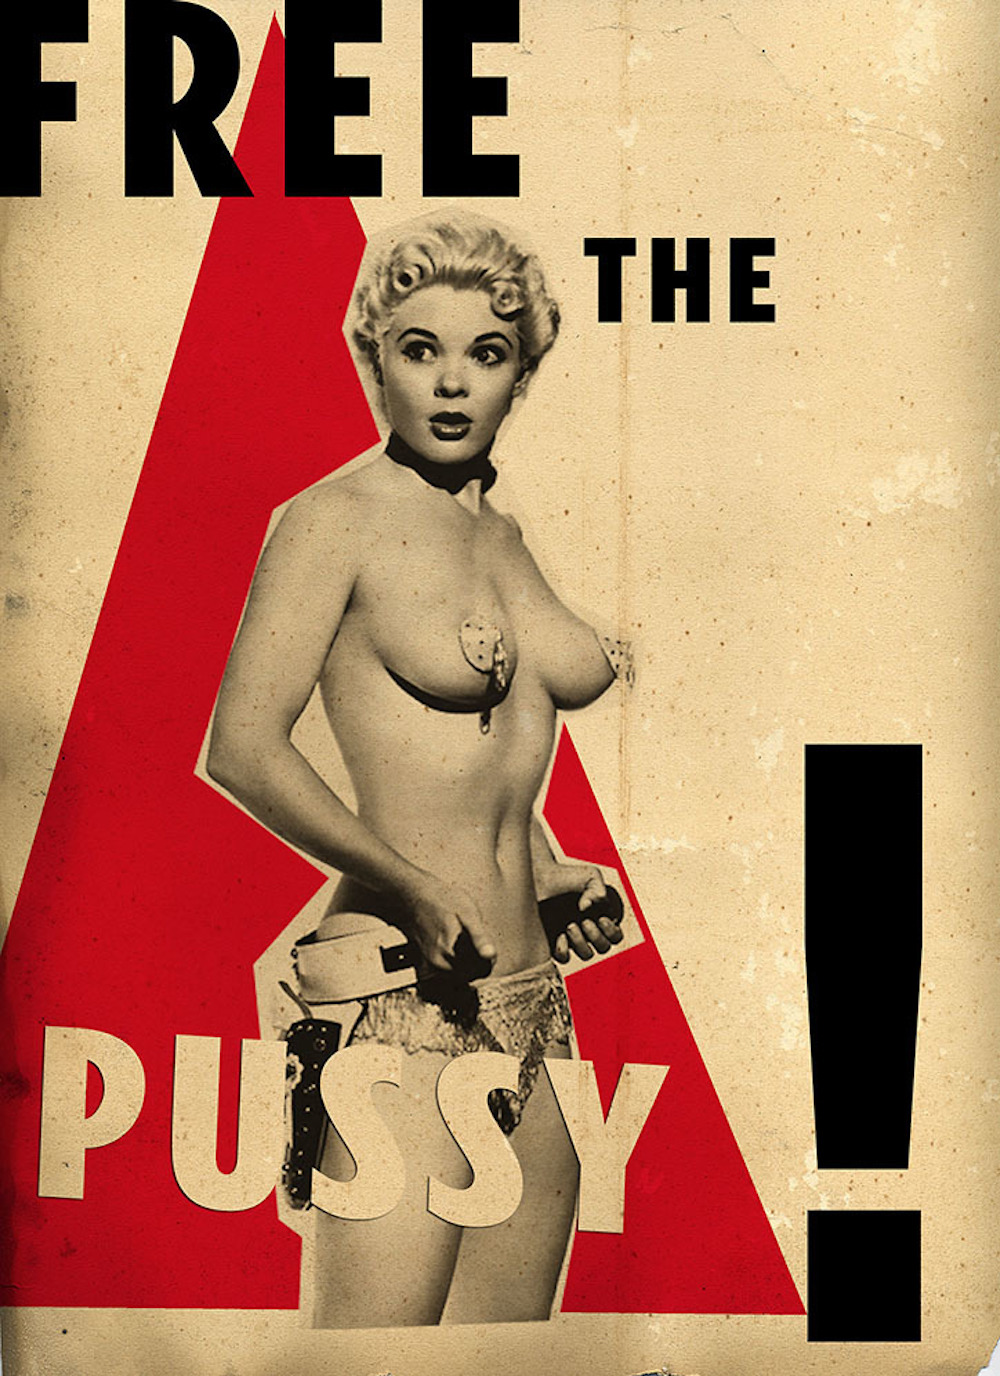 Image: Free the Pussy by Billy Chyldish